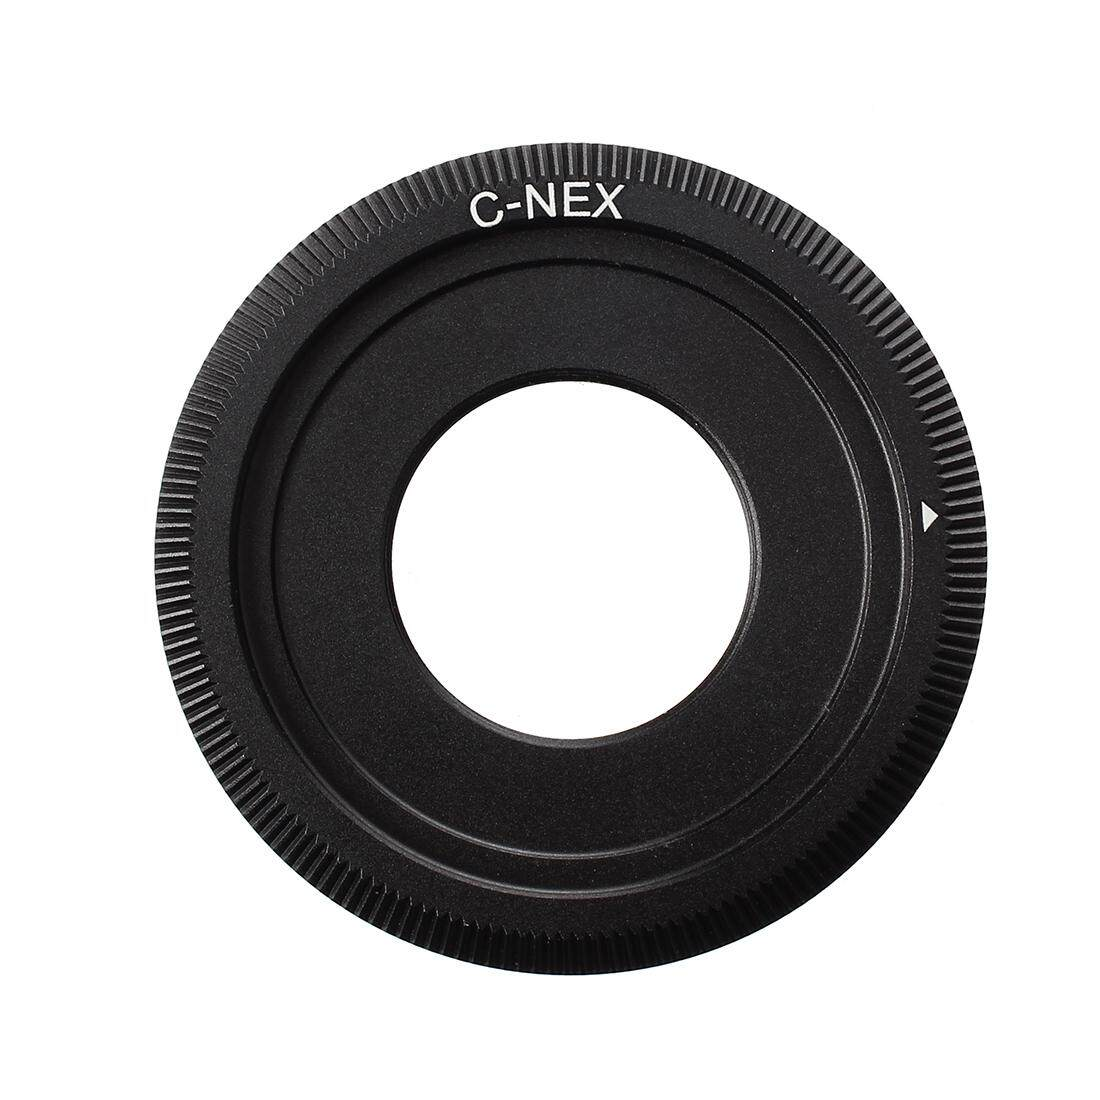 C Mount Lens Adapter Black for SONY NEX-5 NEX-3 NEX-VG10